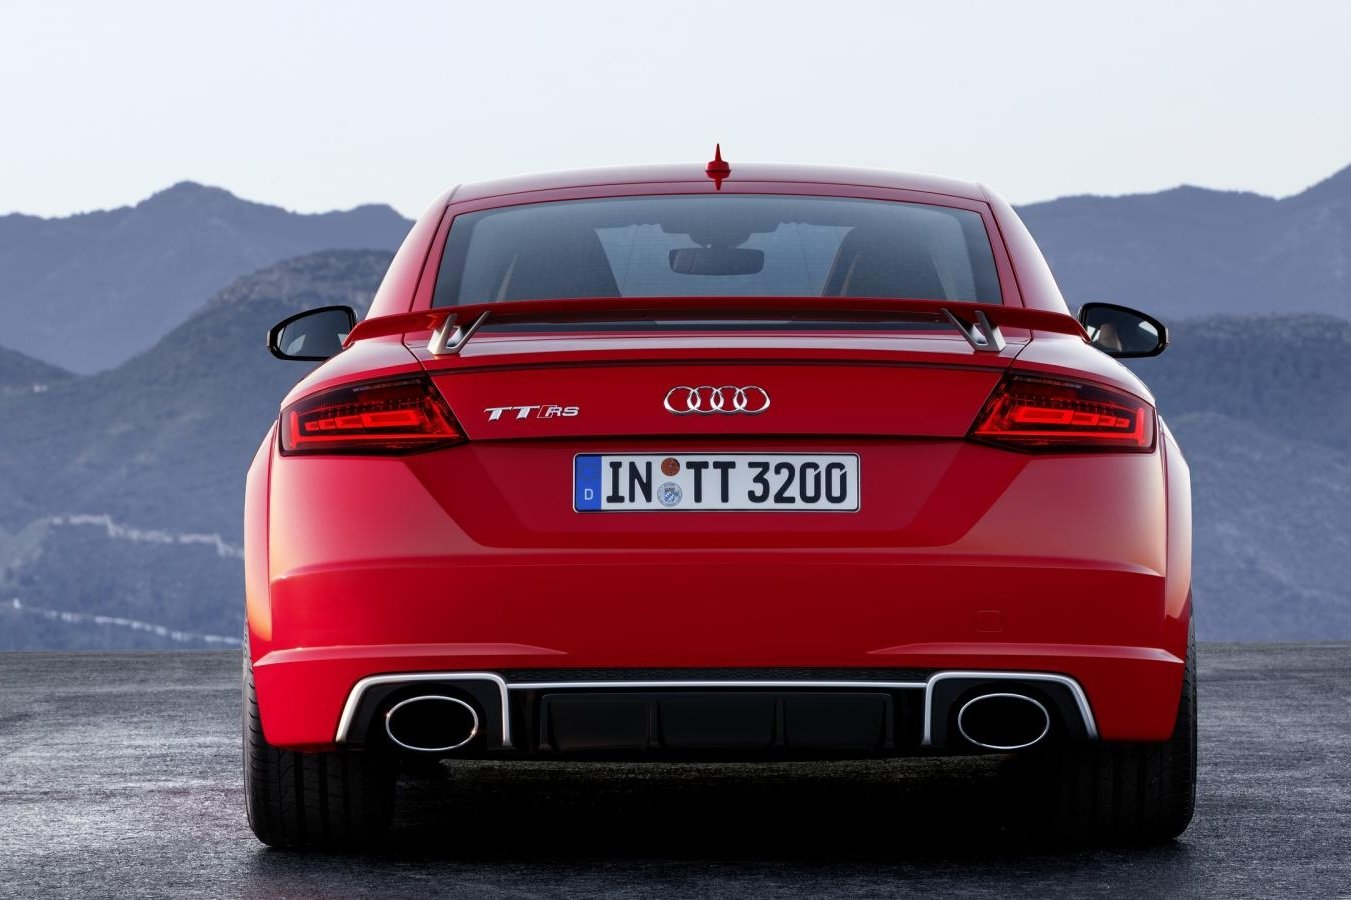 Audi TT RS Quattro Coupe Roadster rood geel 2017 10